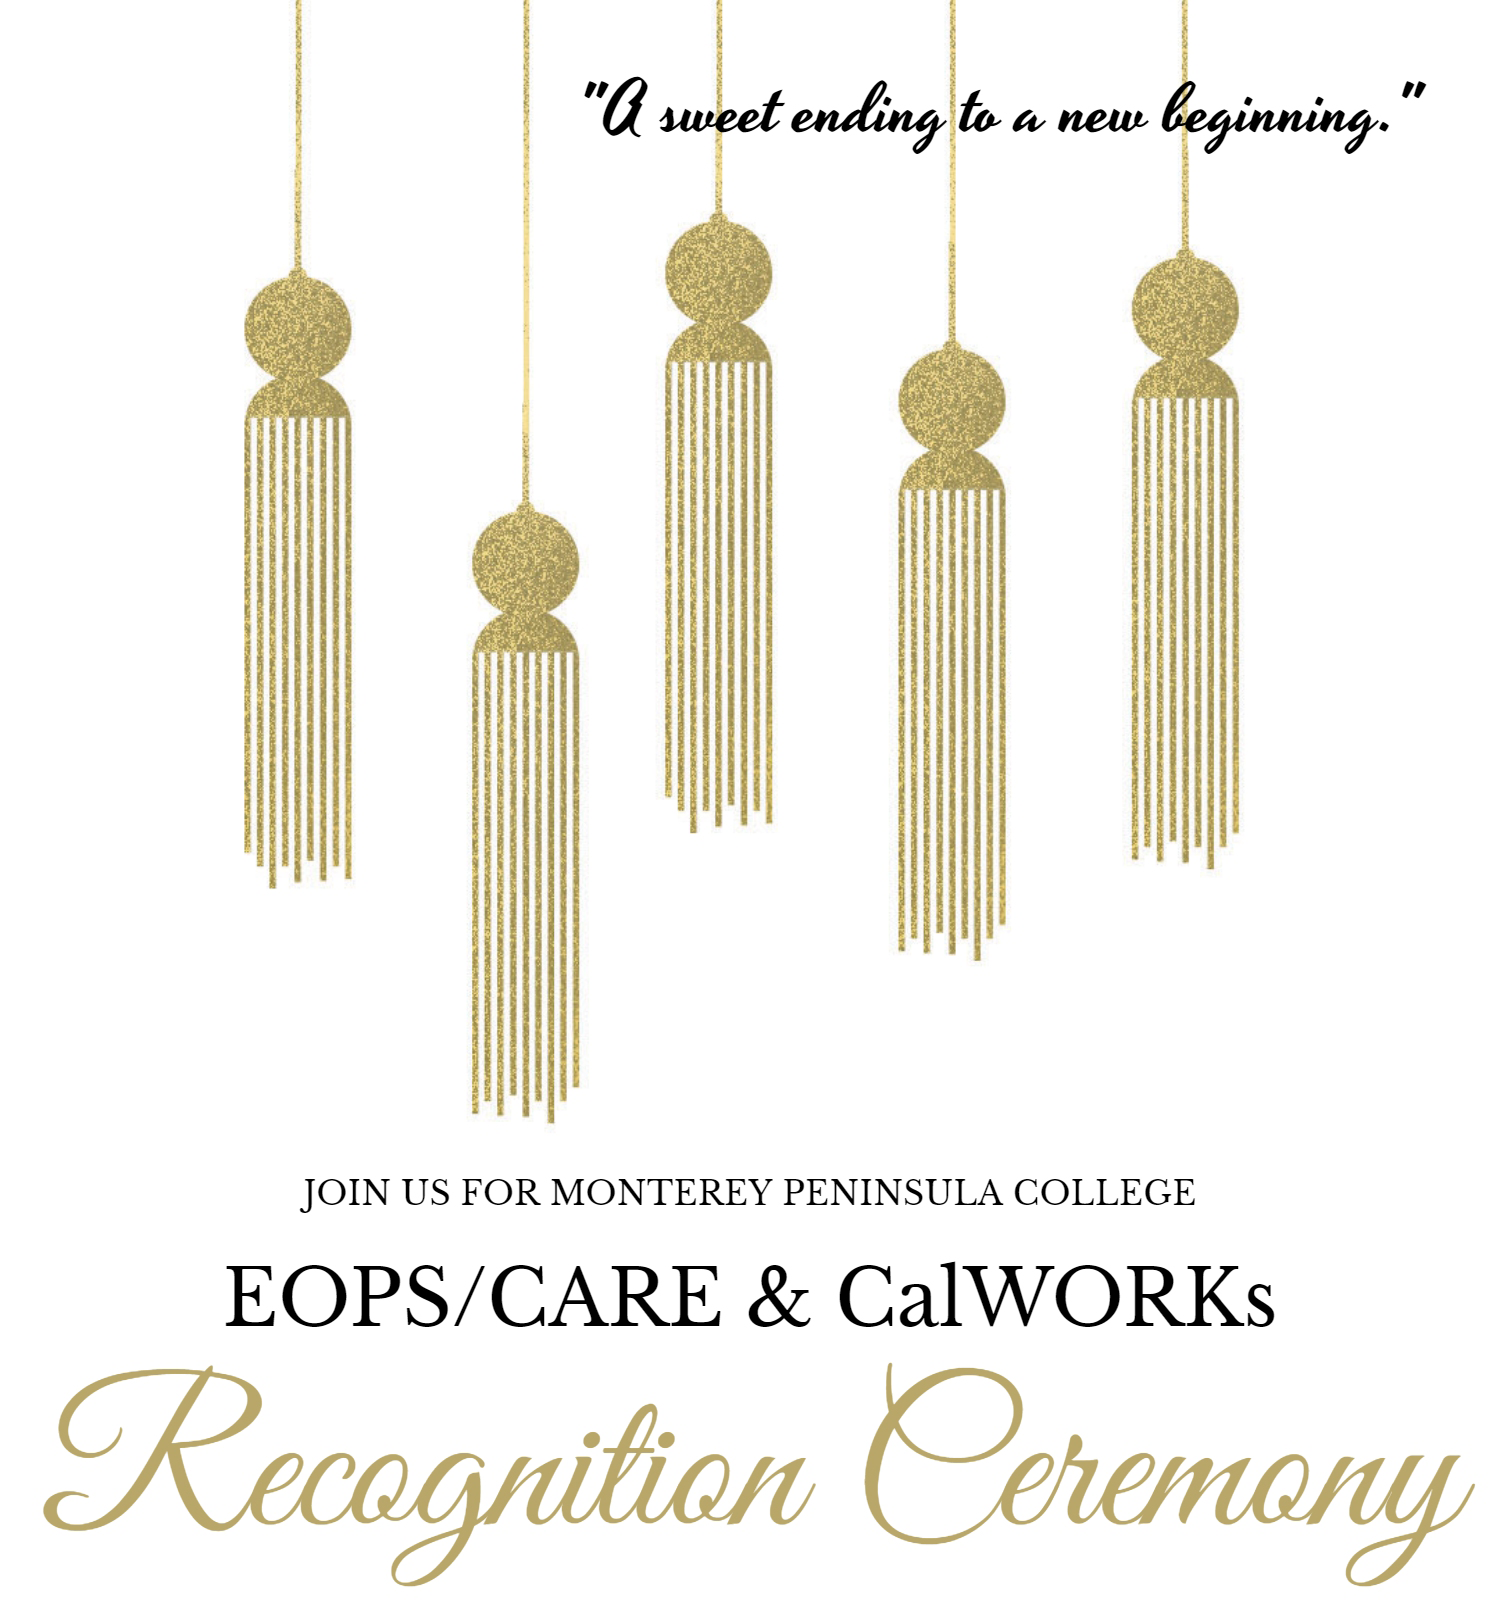 2019 EOPS Recognition Ceremony Invite2